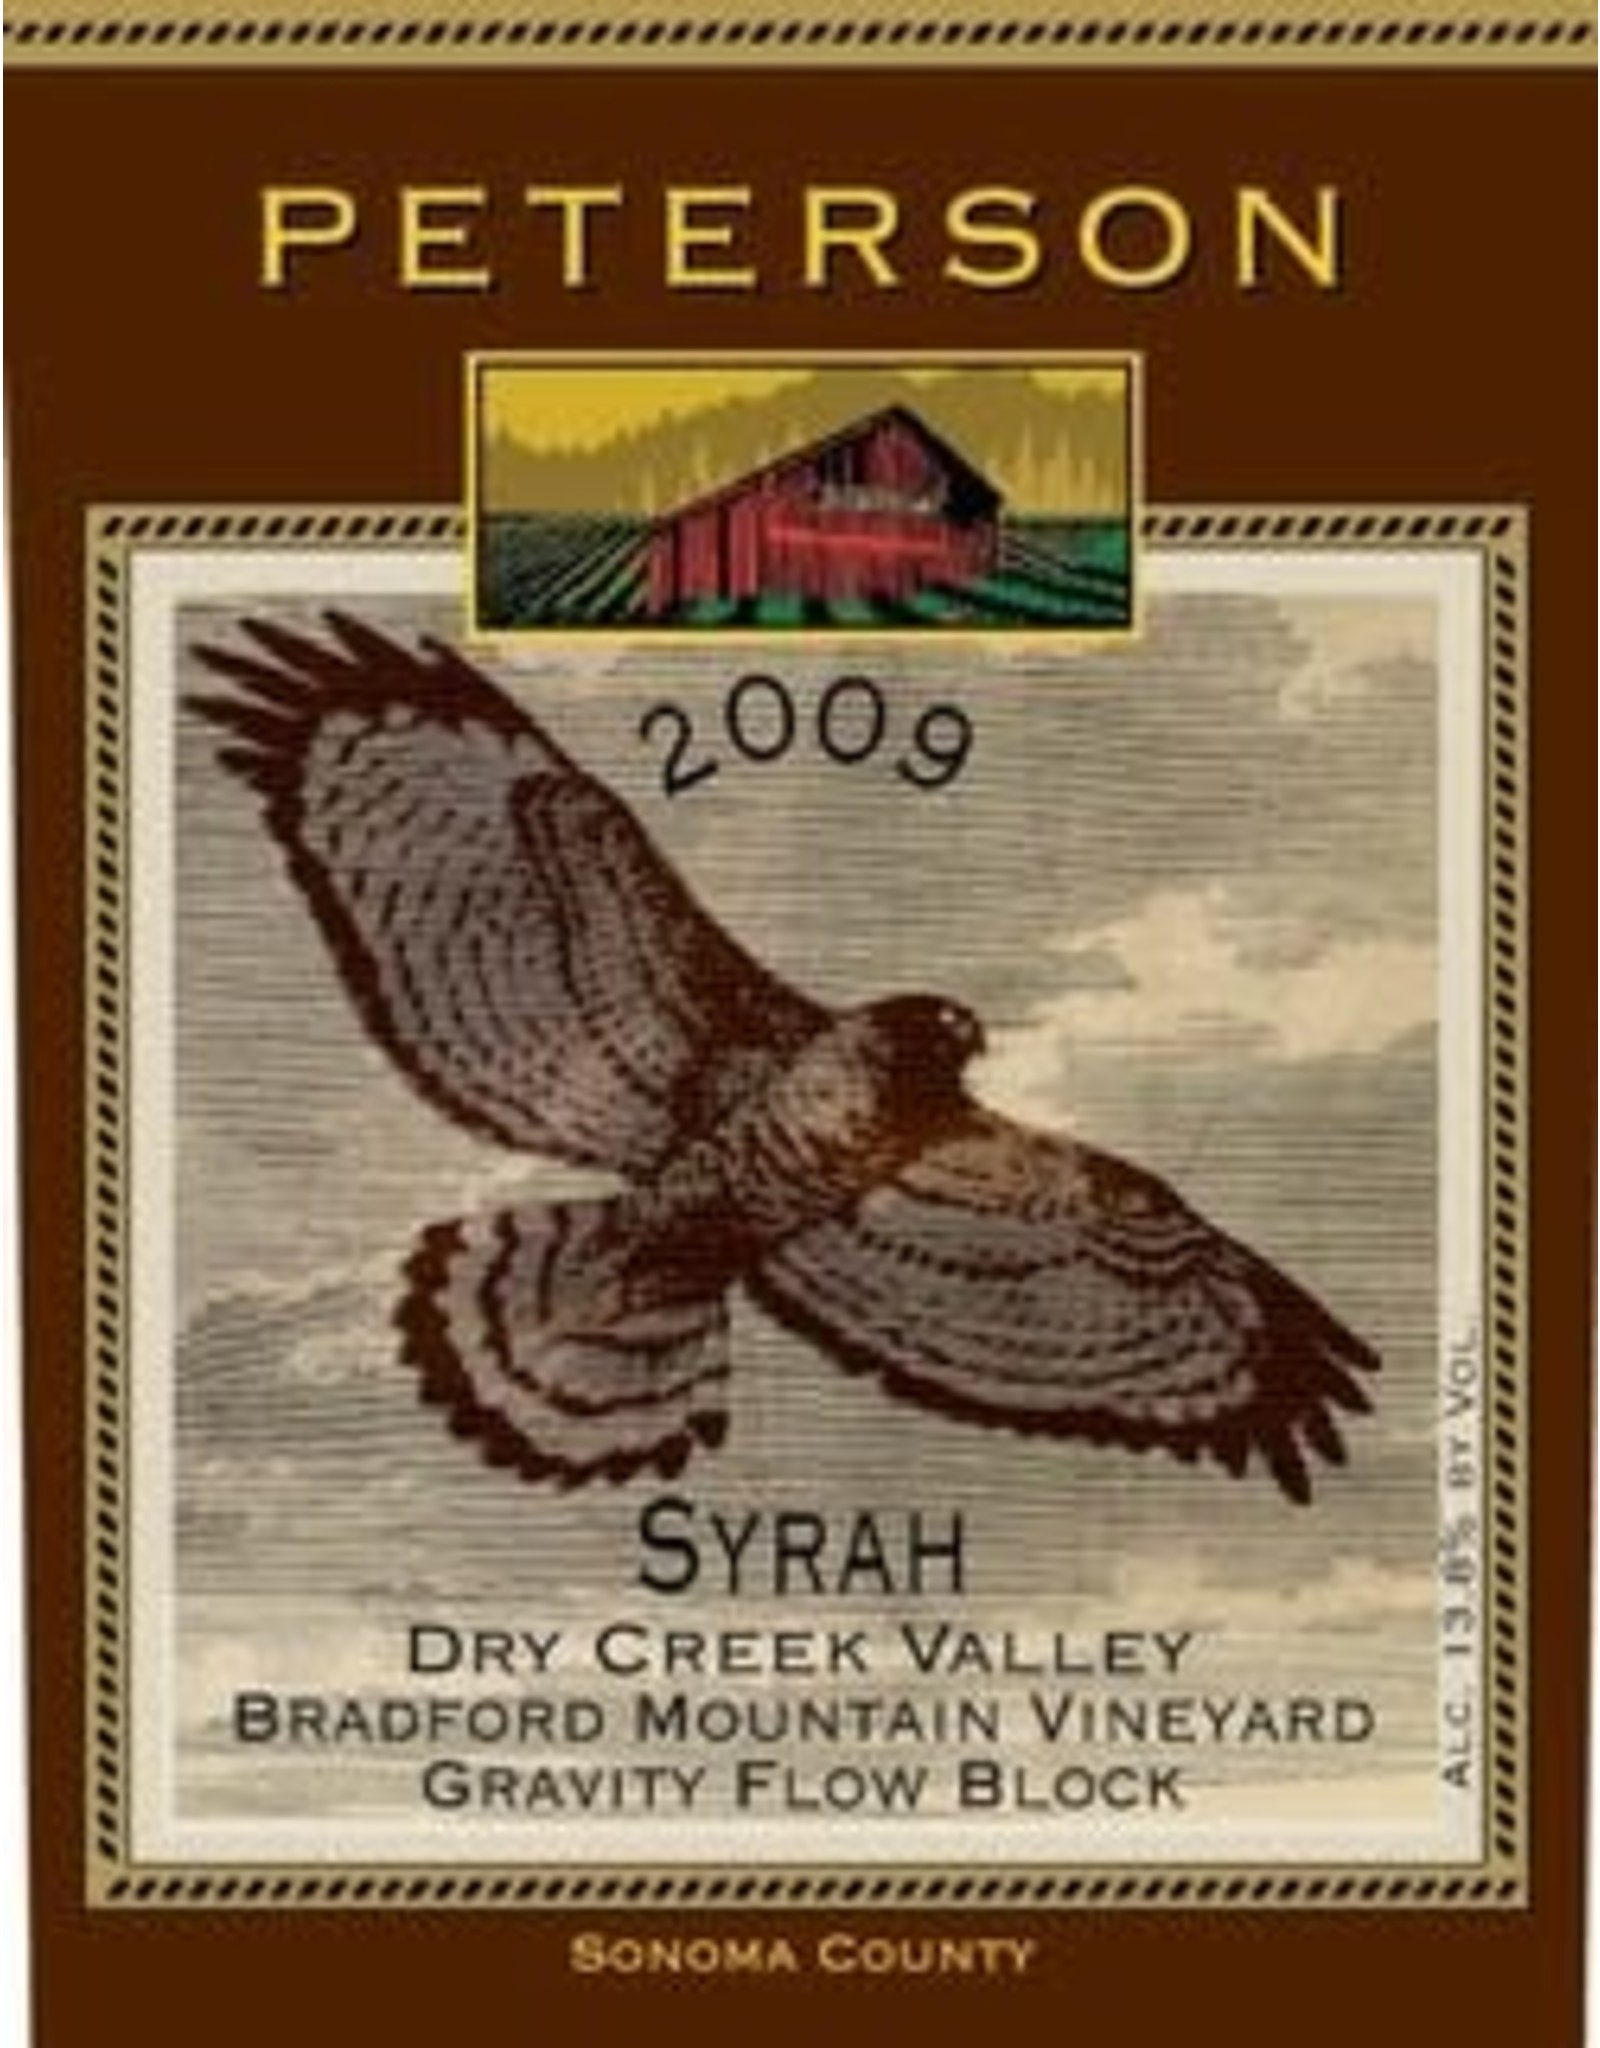 2009 Peterson Syrah Dry Creek